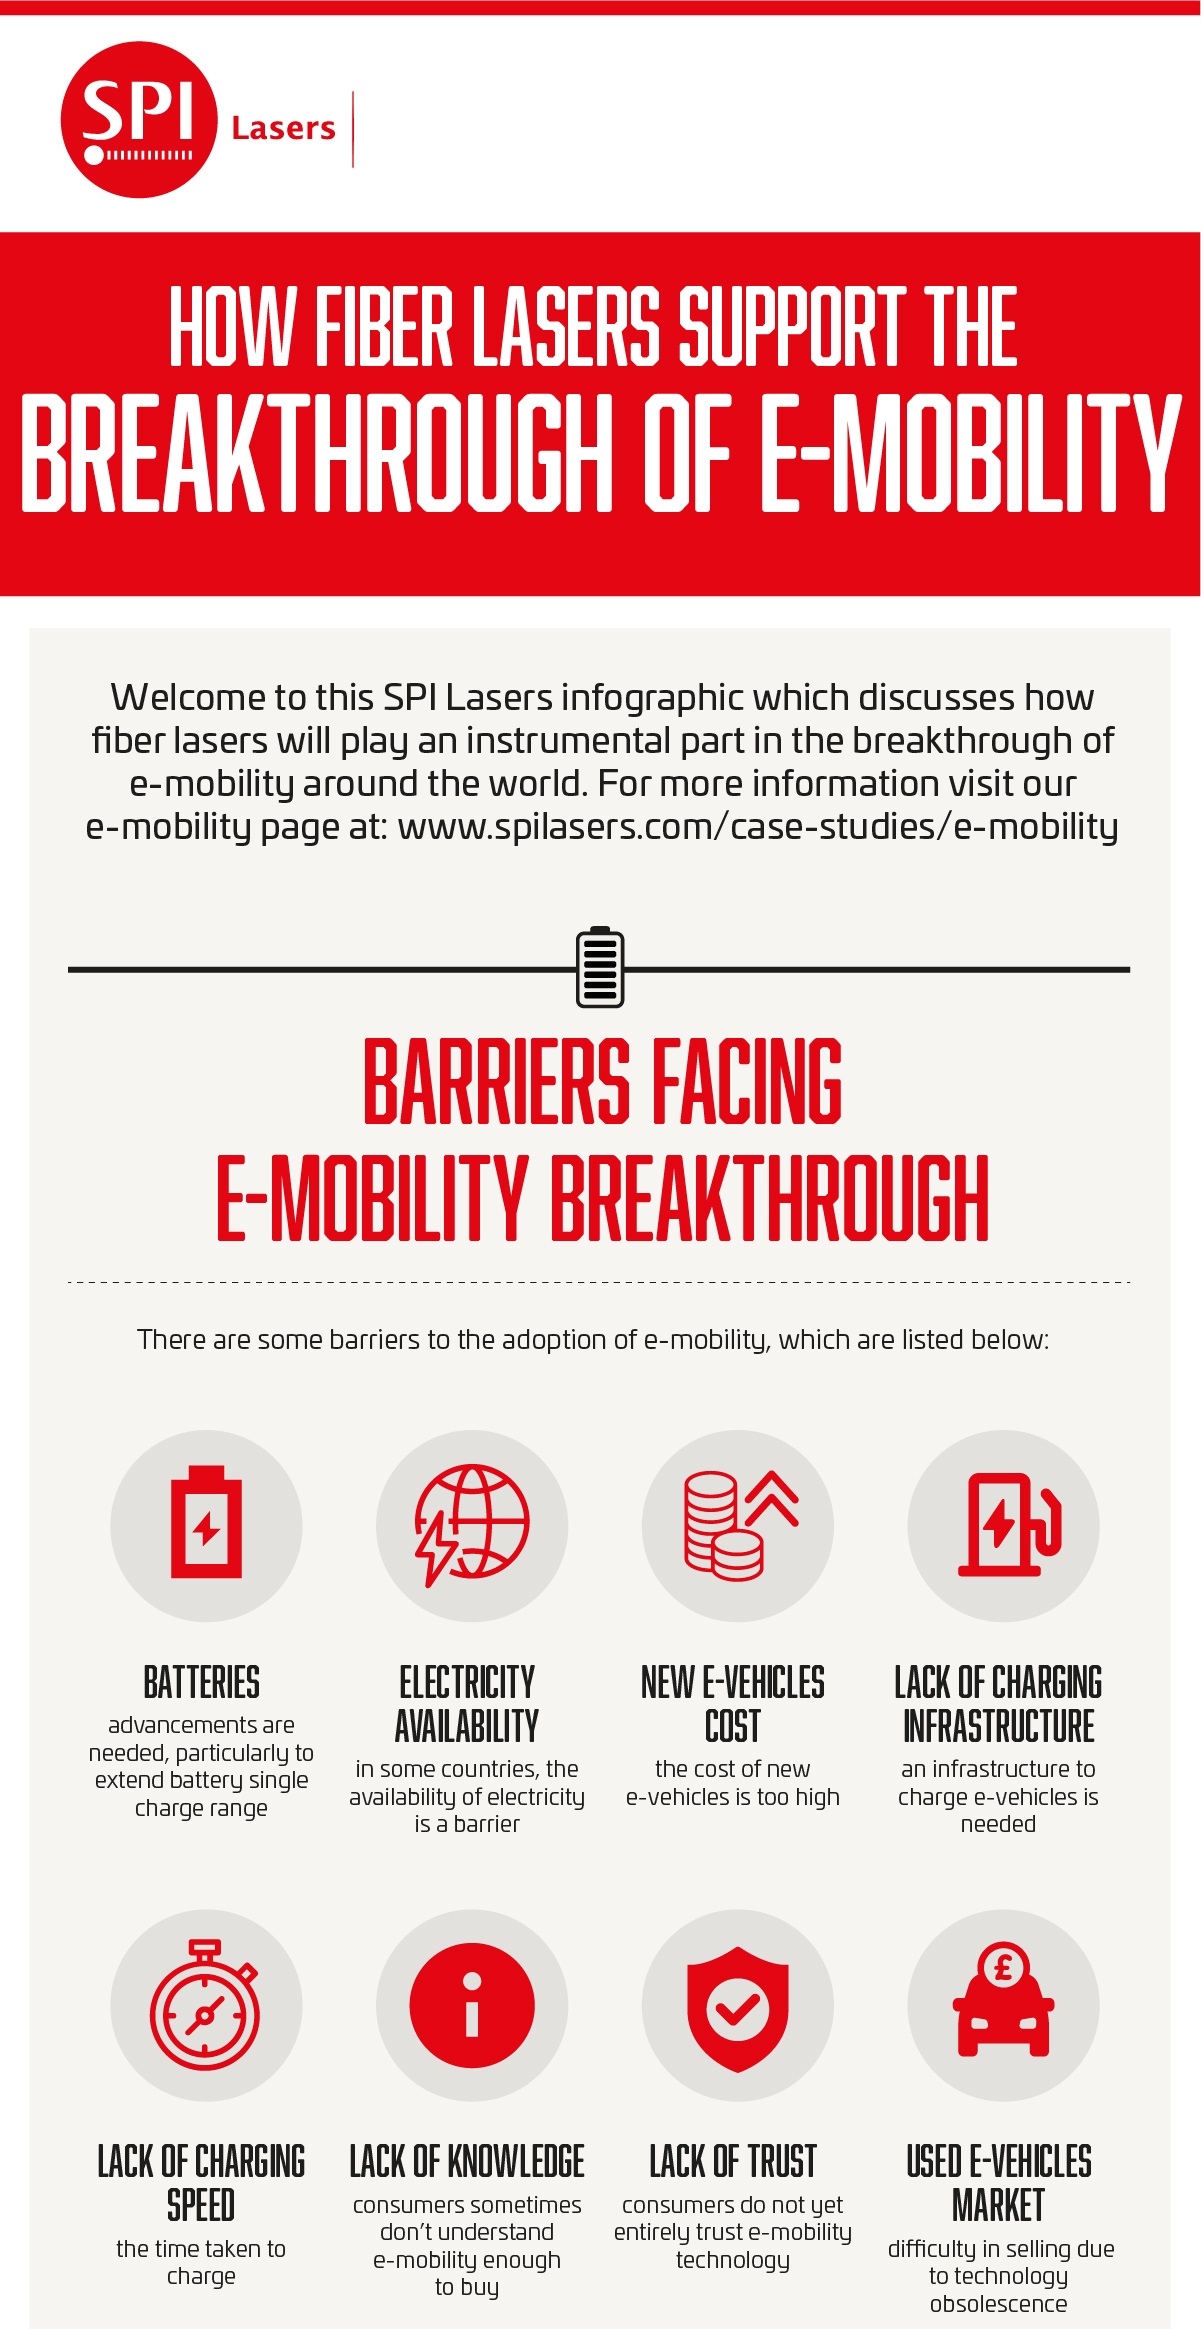 The Breakthrough of e-mobility infographic - the top section only